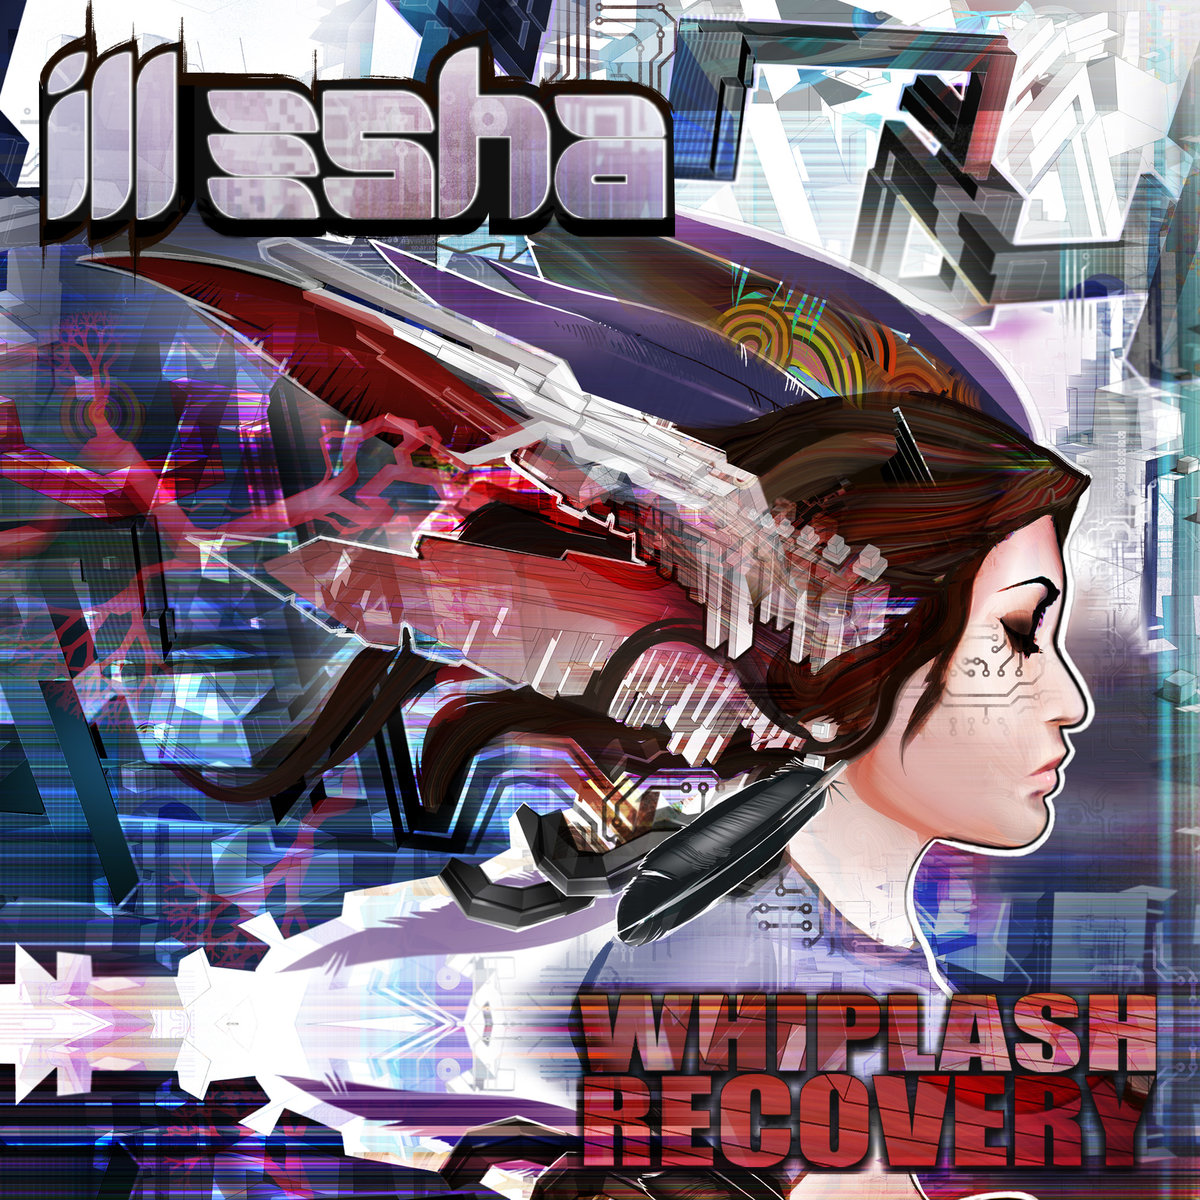 ill-esha - Saturn Returned @ 'Whiplash Recovery' album (california, denver)